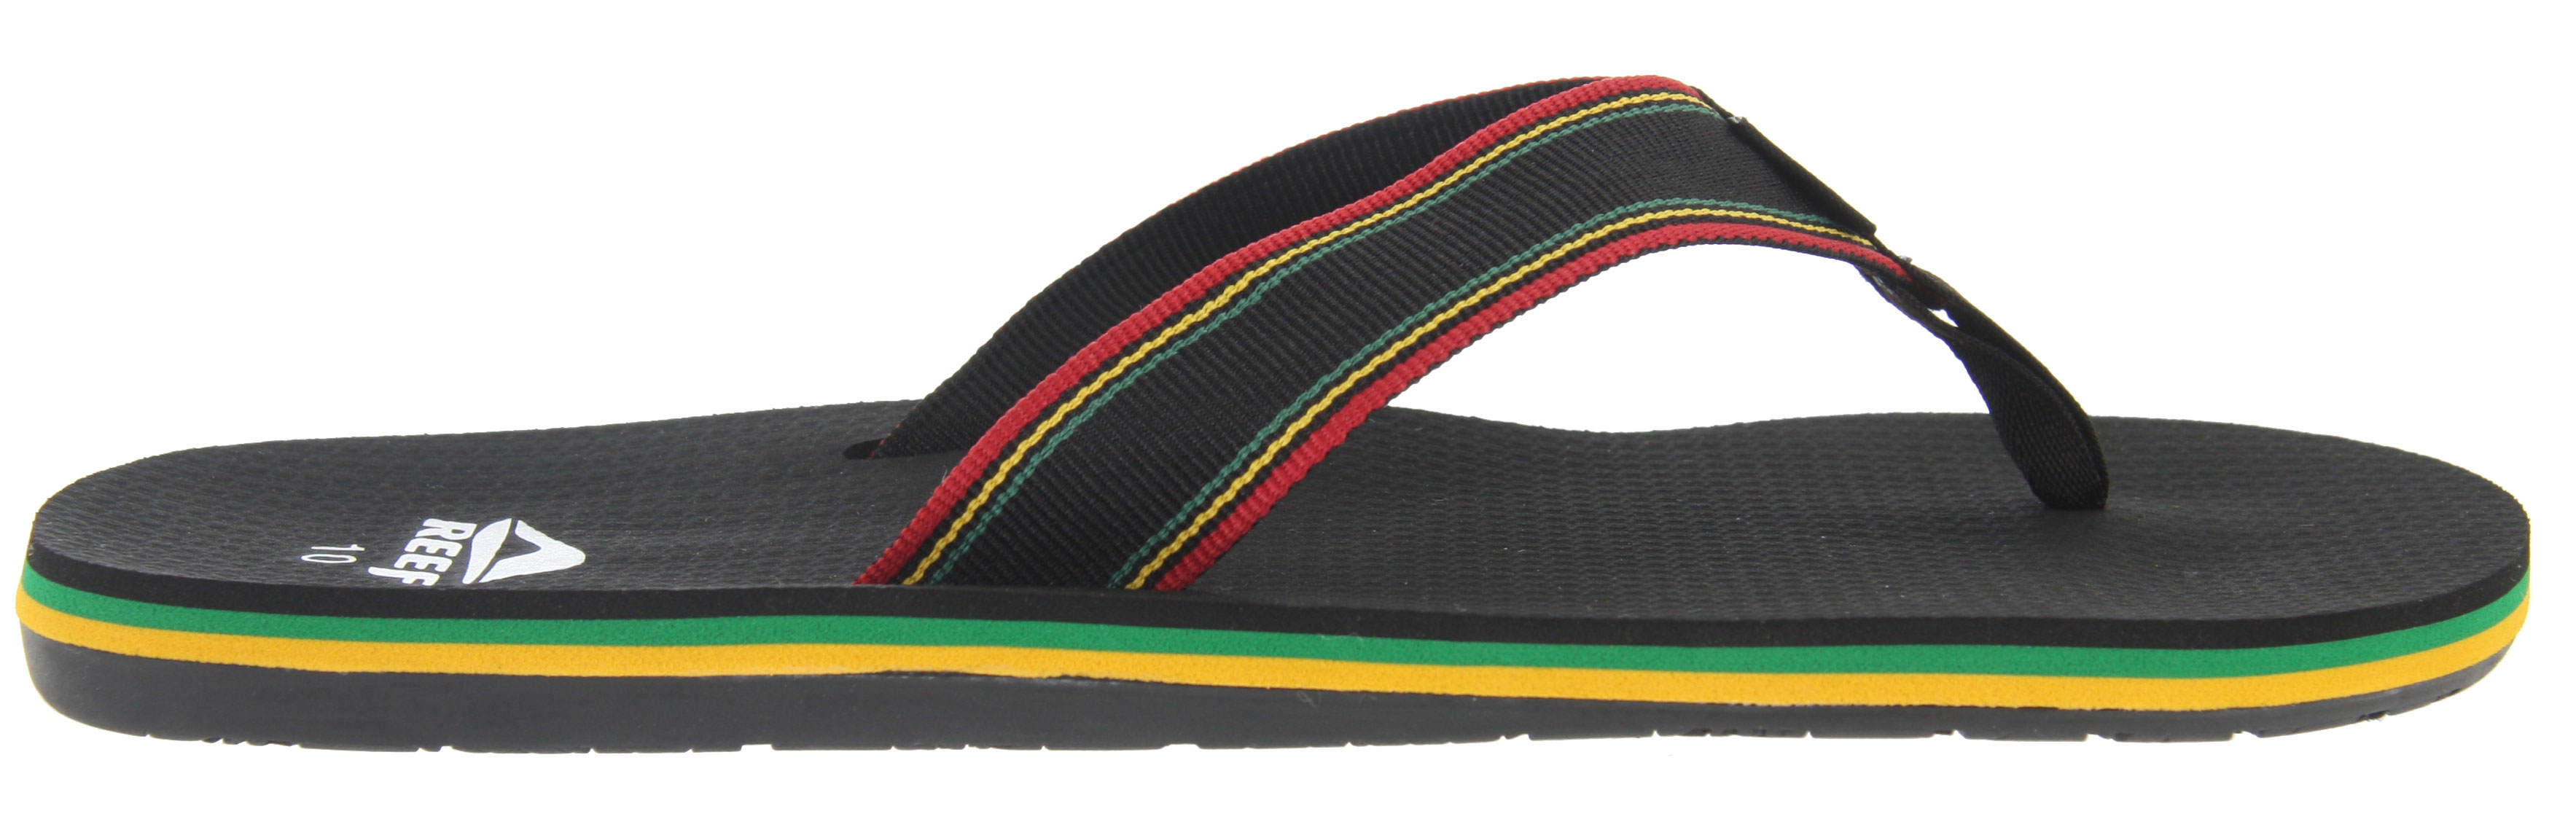 Surf Lets hit the beach with the Reef Forte Sandals. Super comfortable and practical, these Reef Forte Sandals features a soft and grippy footbed. It's perfect for long walks on the beach on a nice summer day. Its contoured footbed allows arch support. Its casual flip flop design featuring multi-colored stripes all on the side of the sandals adds character to an otherwise ordinary sandal. Wear these all summer long and feel comfortable.Key Features of the Reef Forte Sandals: New Super Soft And Grippy Footbed Soft Reef Polyester Woven Strap With Ticking Color Detailing Contoured Footbed With Anatomical Arch Support Grippy Molded Reef Rubber Outsole - $28.95